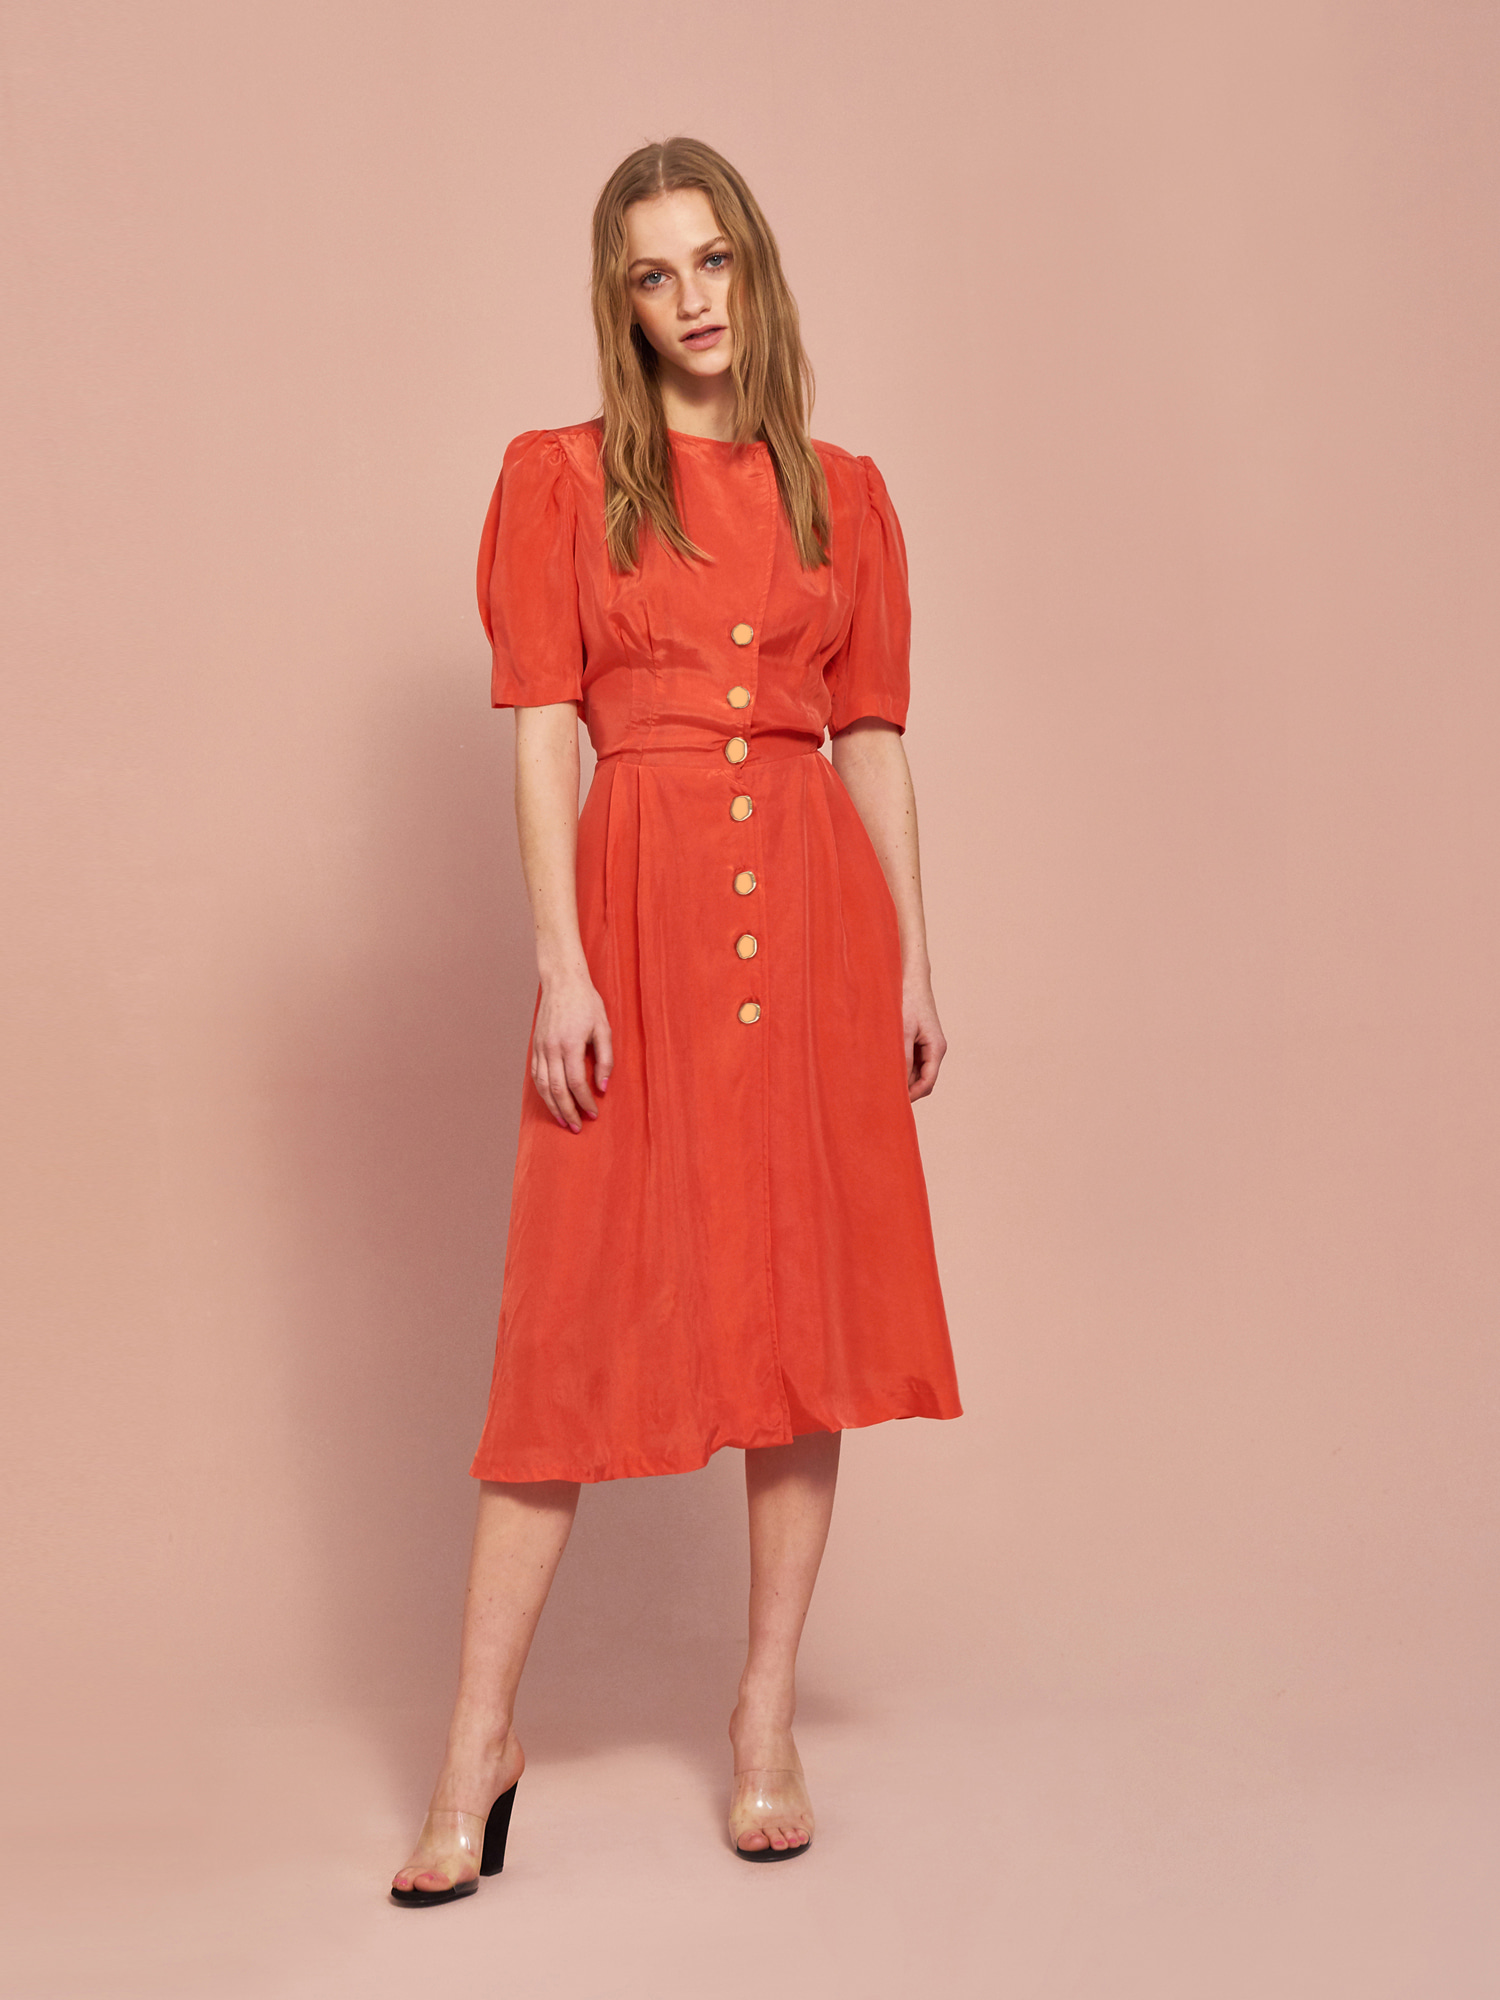 [BEST 15% OFF]Cupra Button Dress in Scarlet